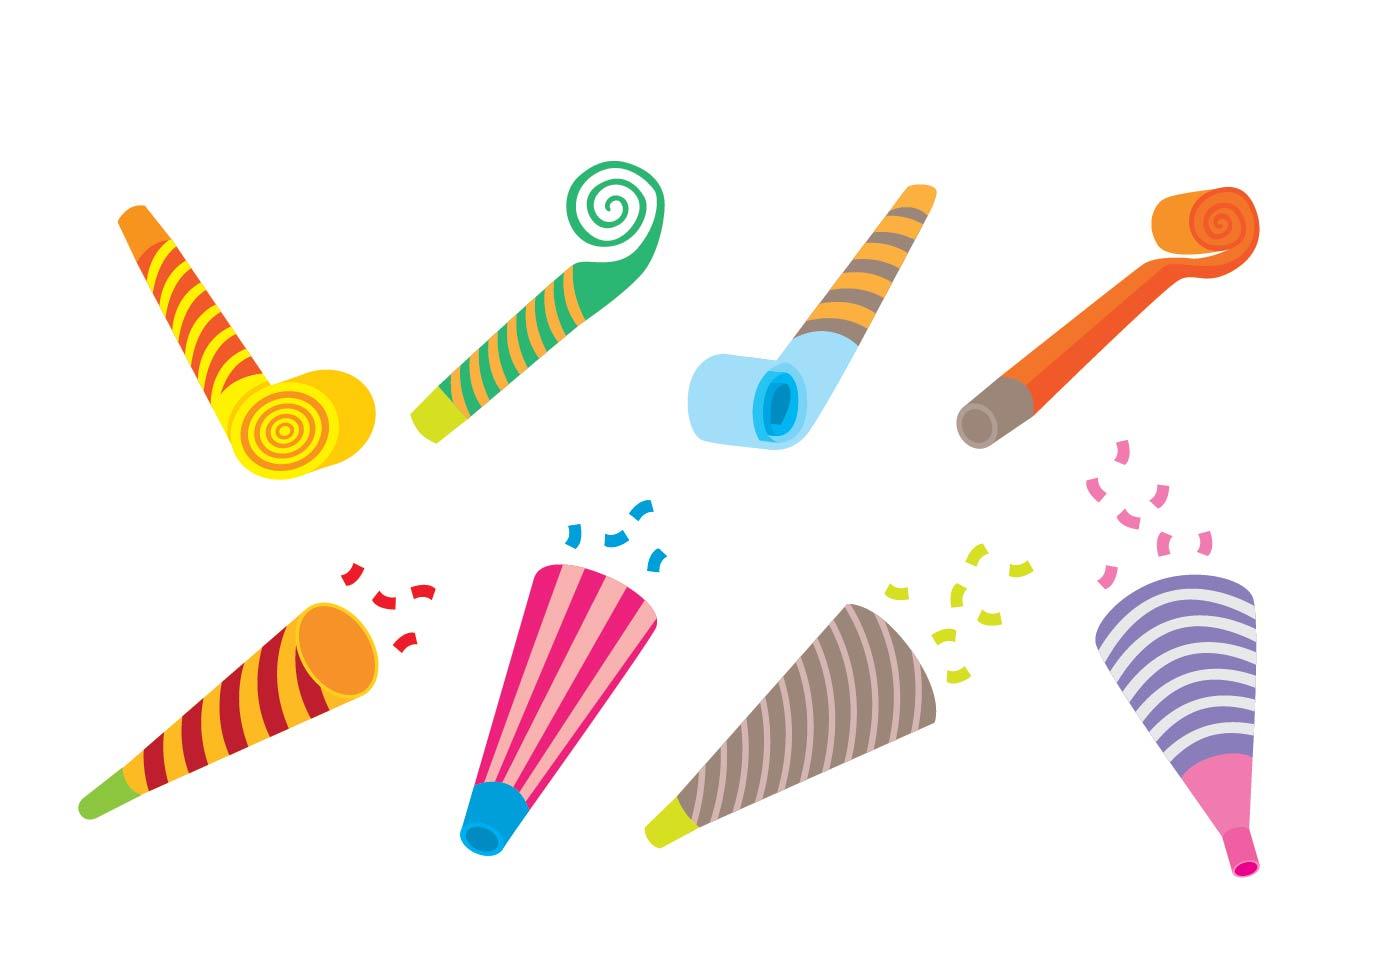 Party Blower: Download Free Vector Art, Stock